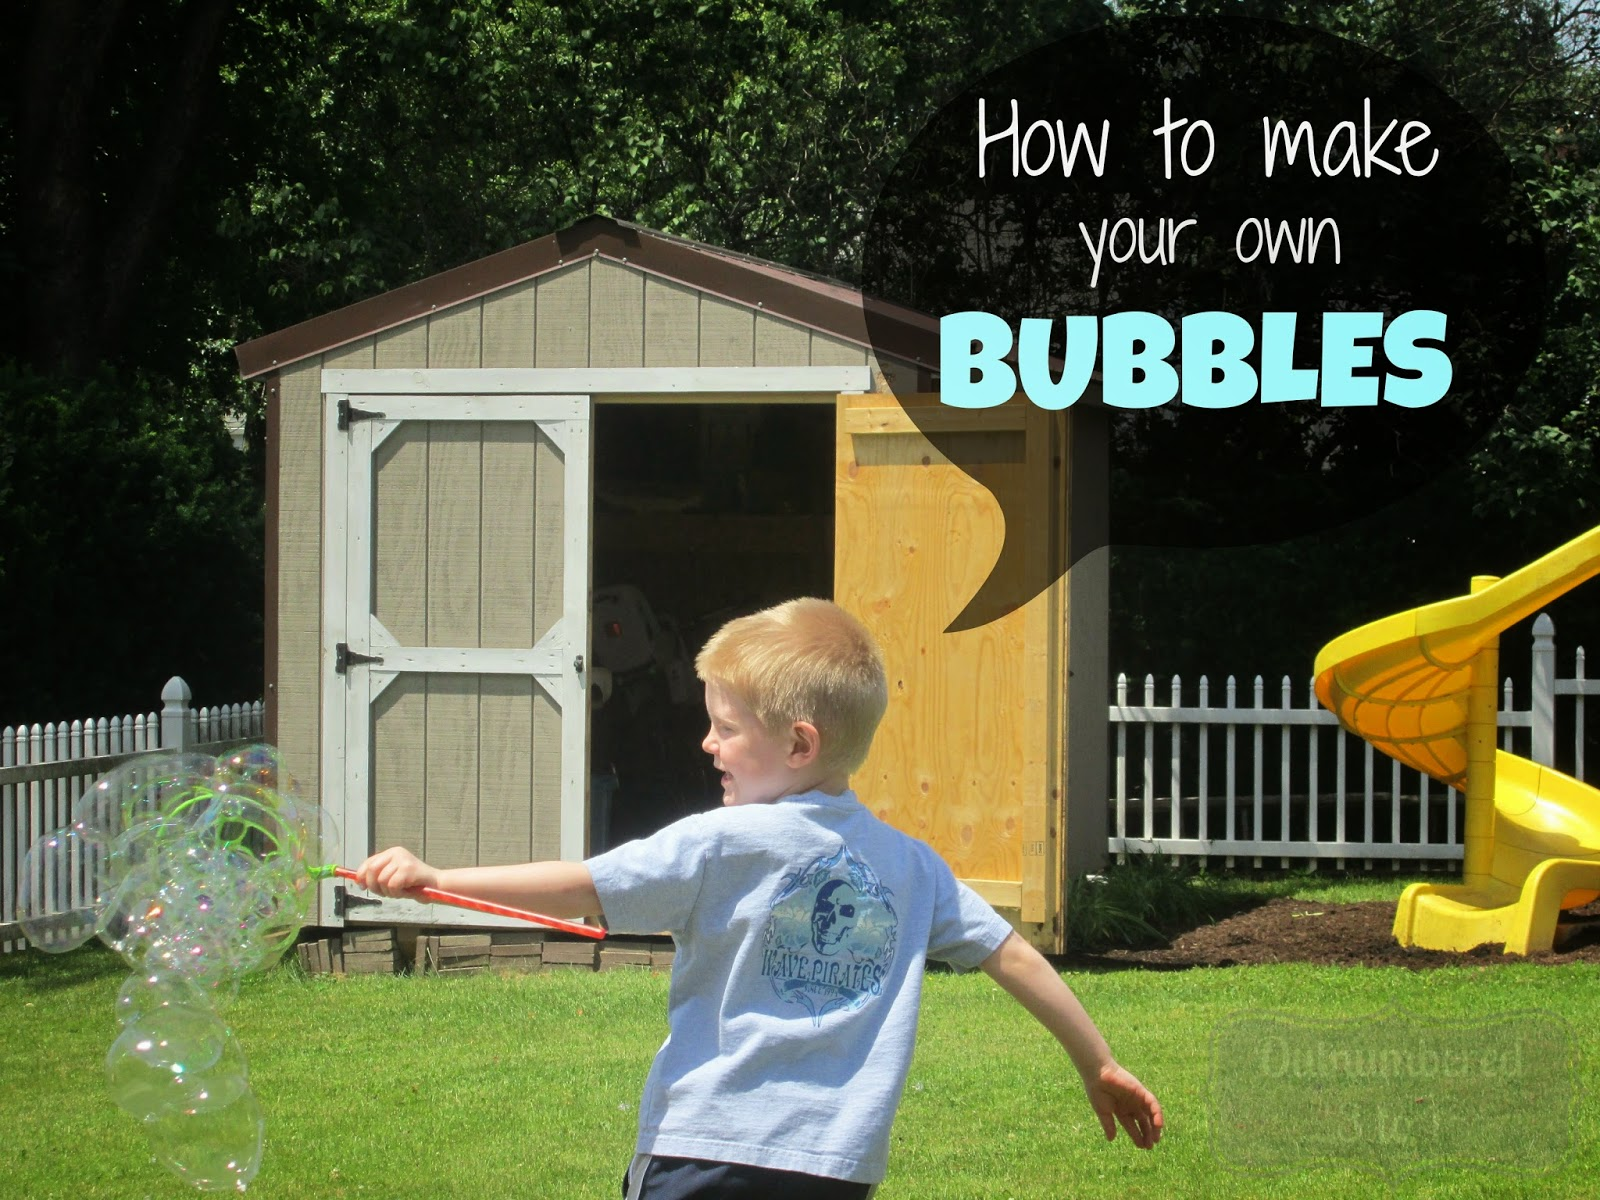 DIY - How to Make Your Own BUBBLES